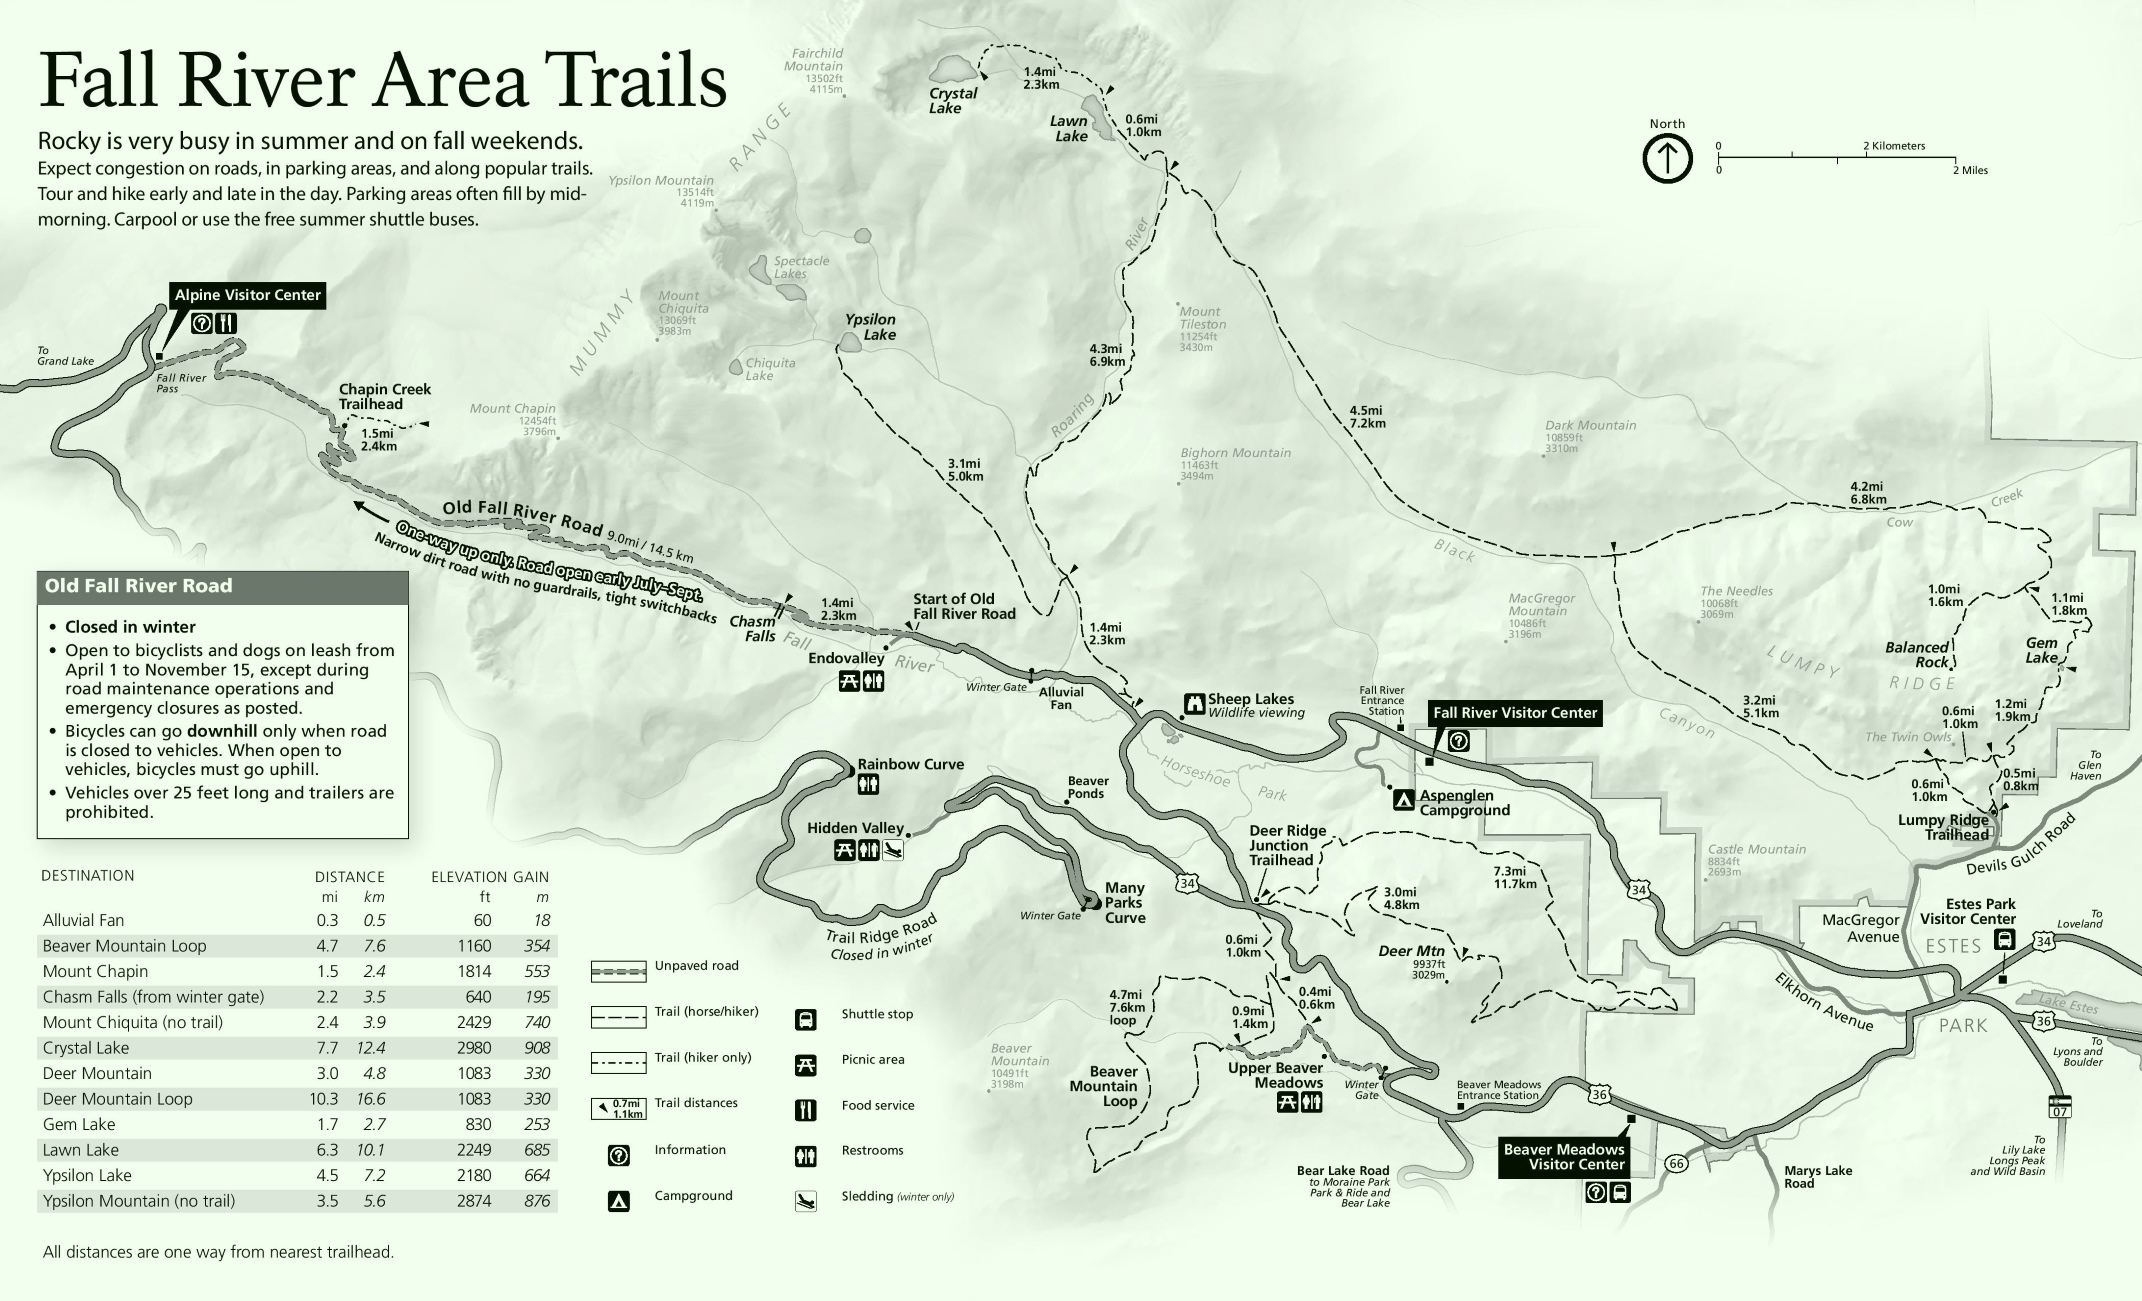 Rocky Mountain Fall River Area trails map